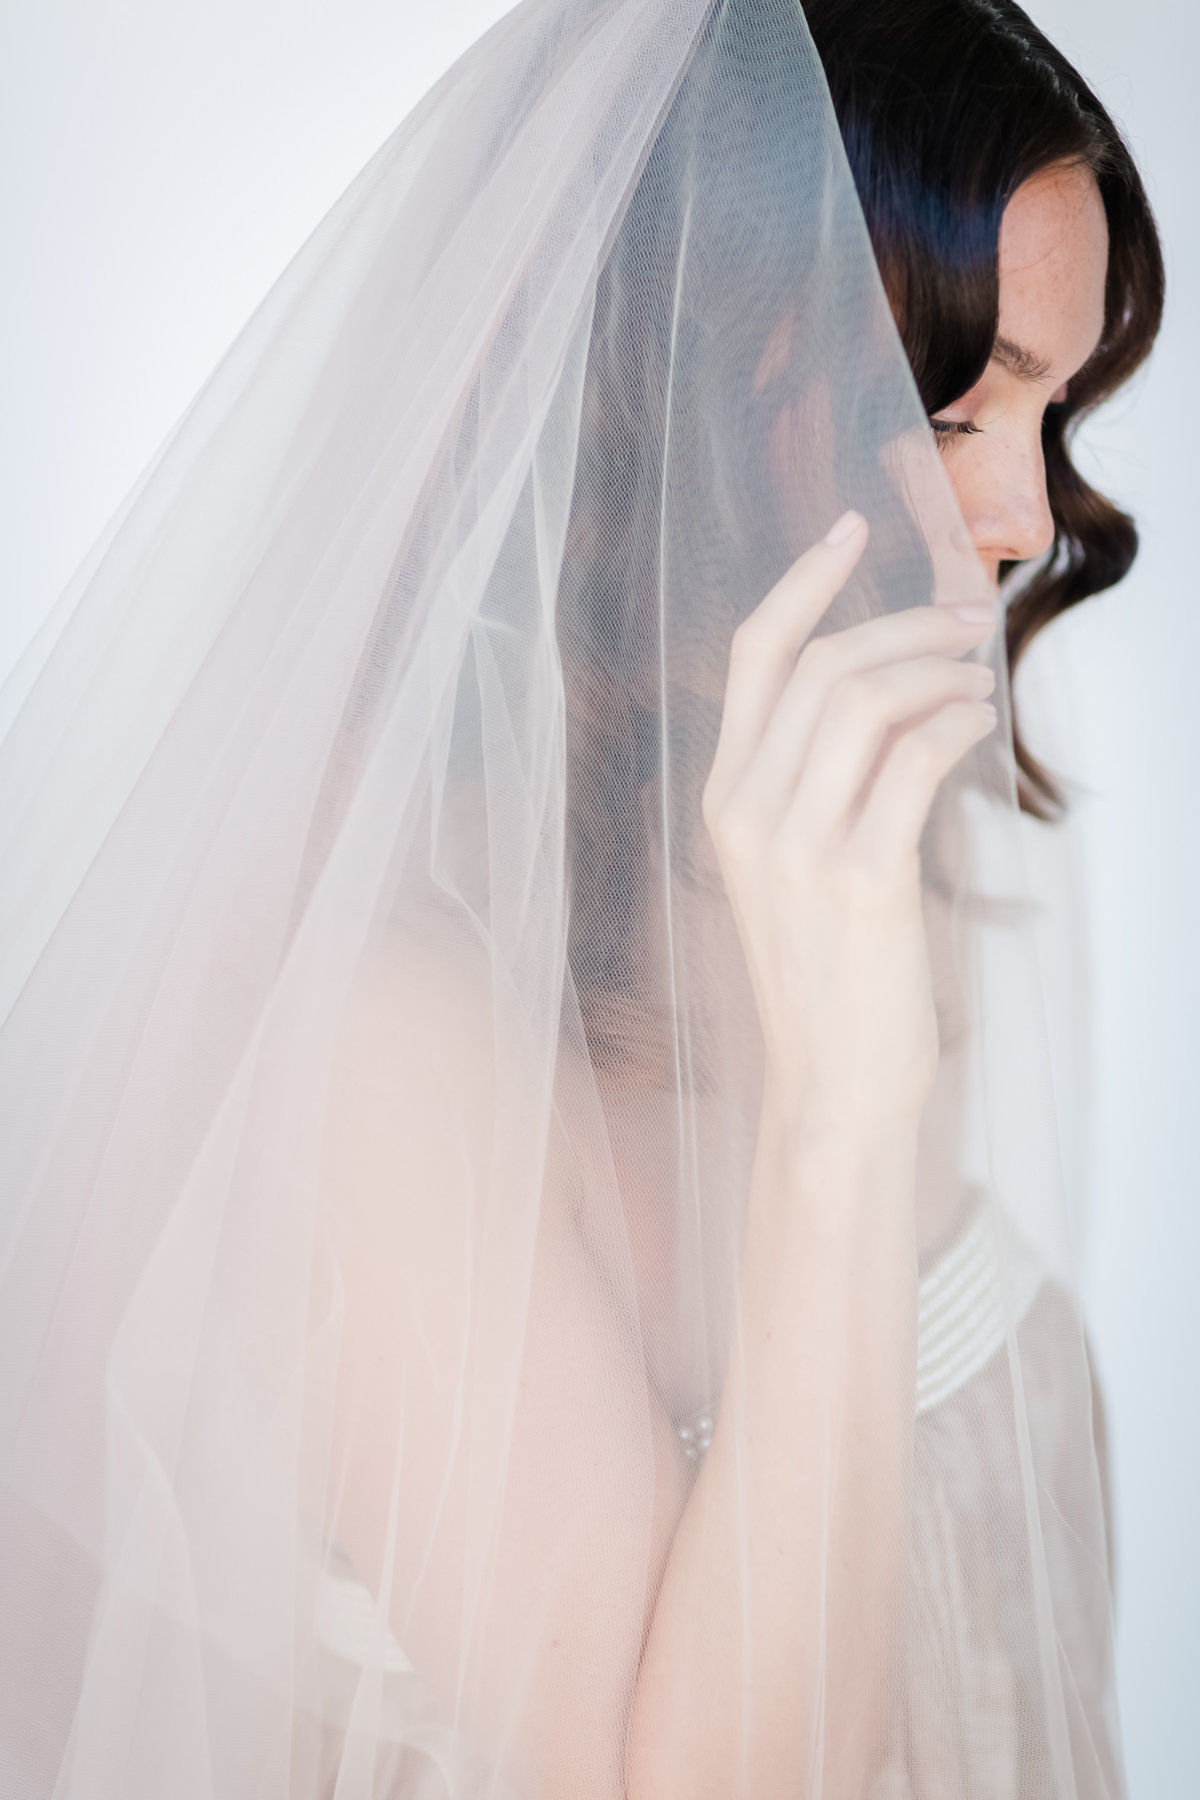 Bridal Crown Editorial Shoot Trace Henningsen Accessories_Valorie Darling Photography-7579